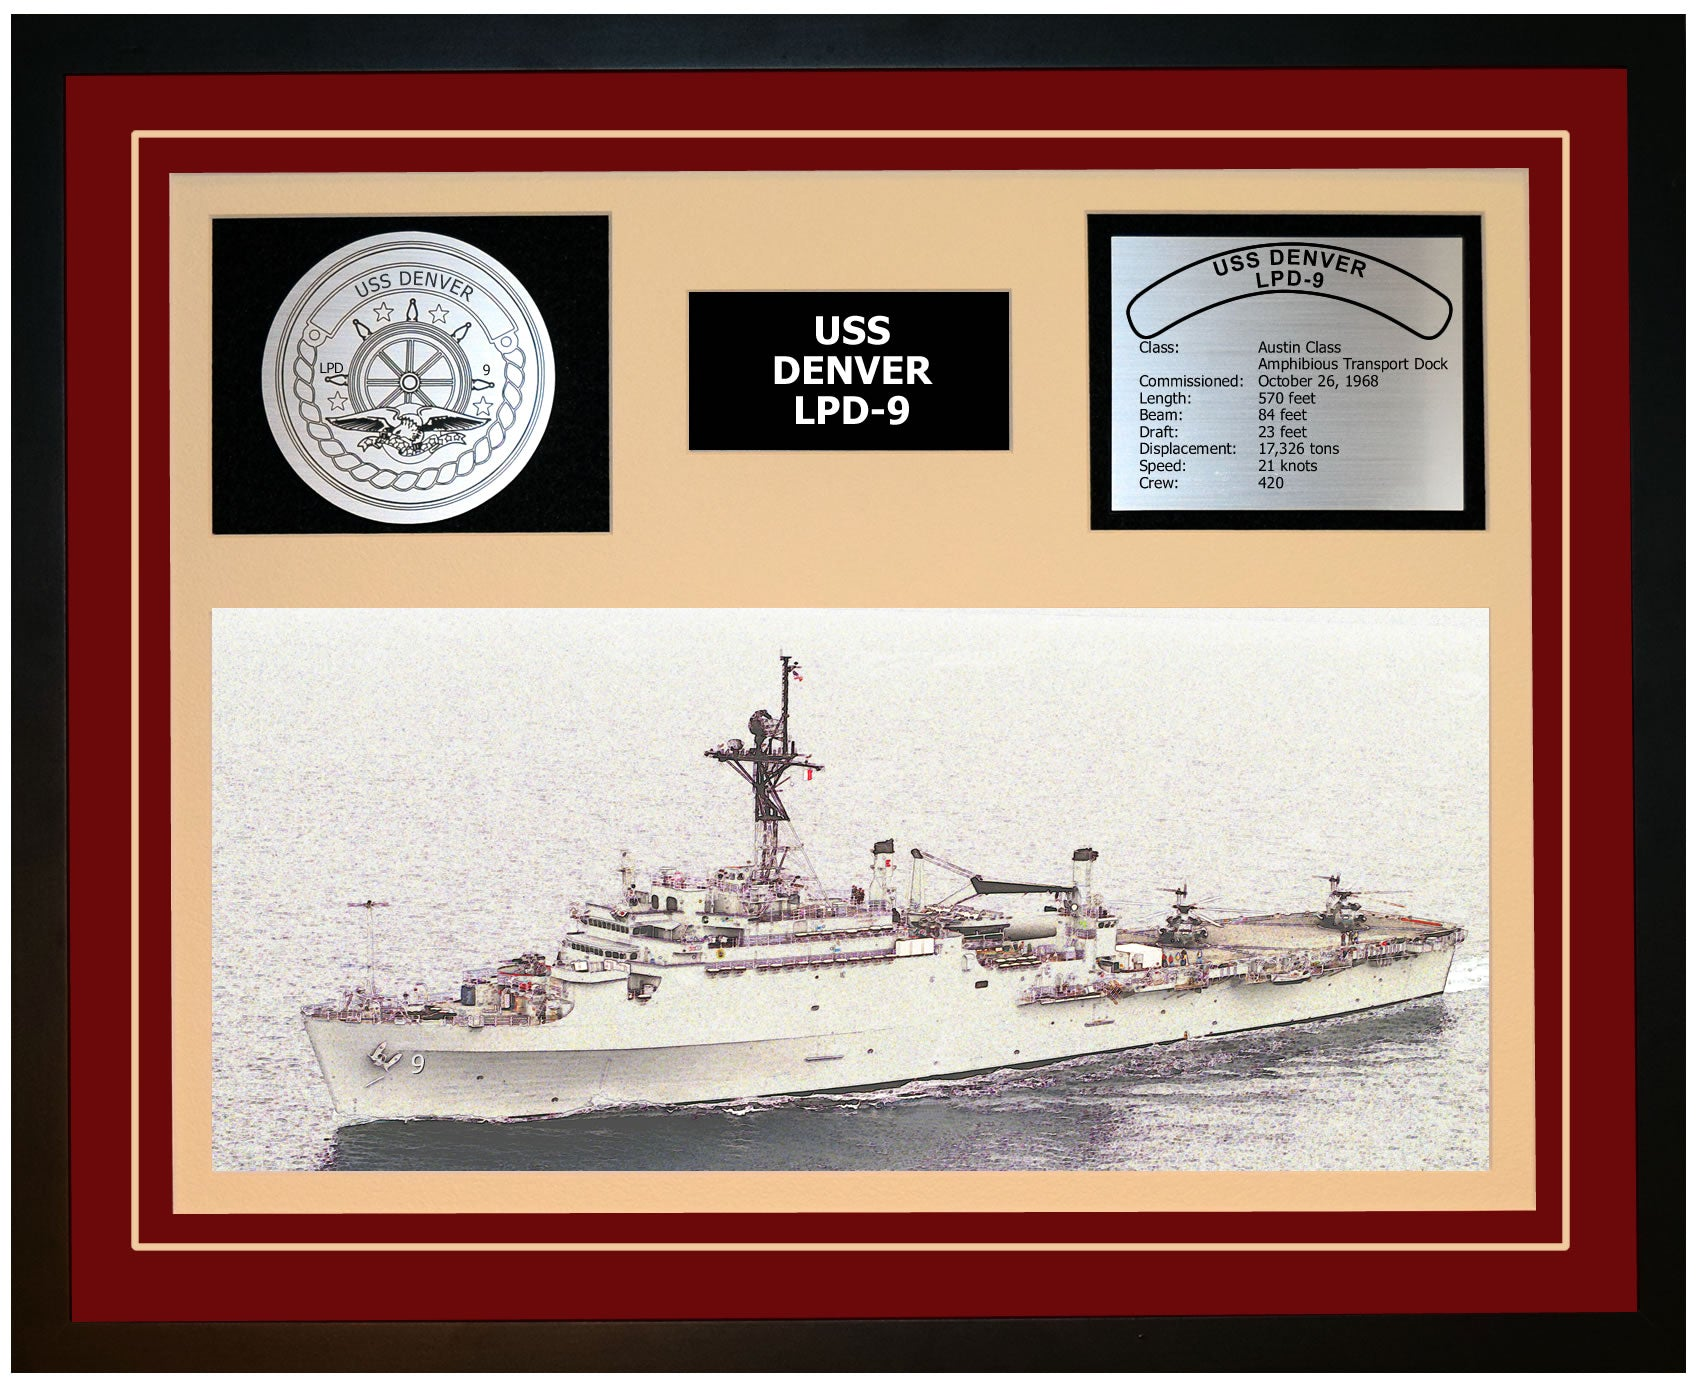 USS DENVER LPD-9 Framed Navy Ship Display Burgundy